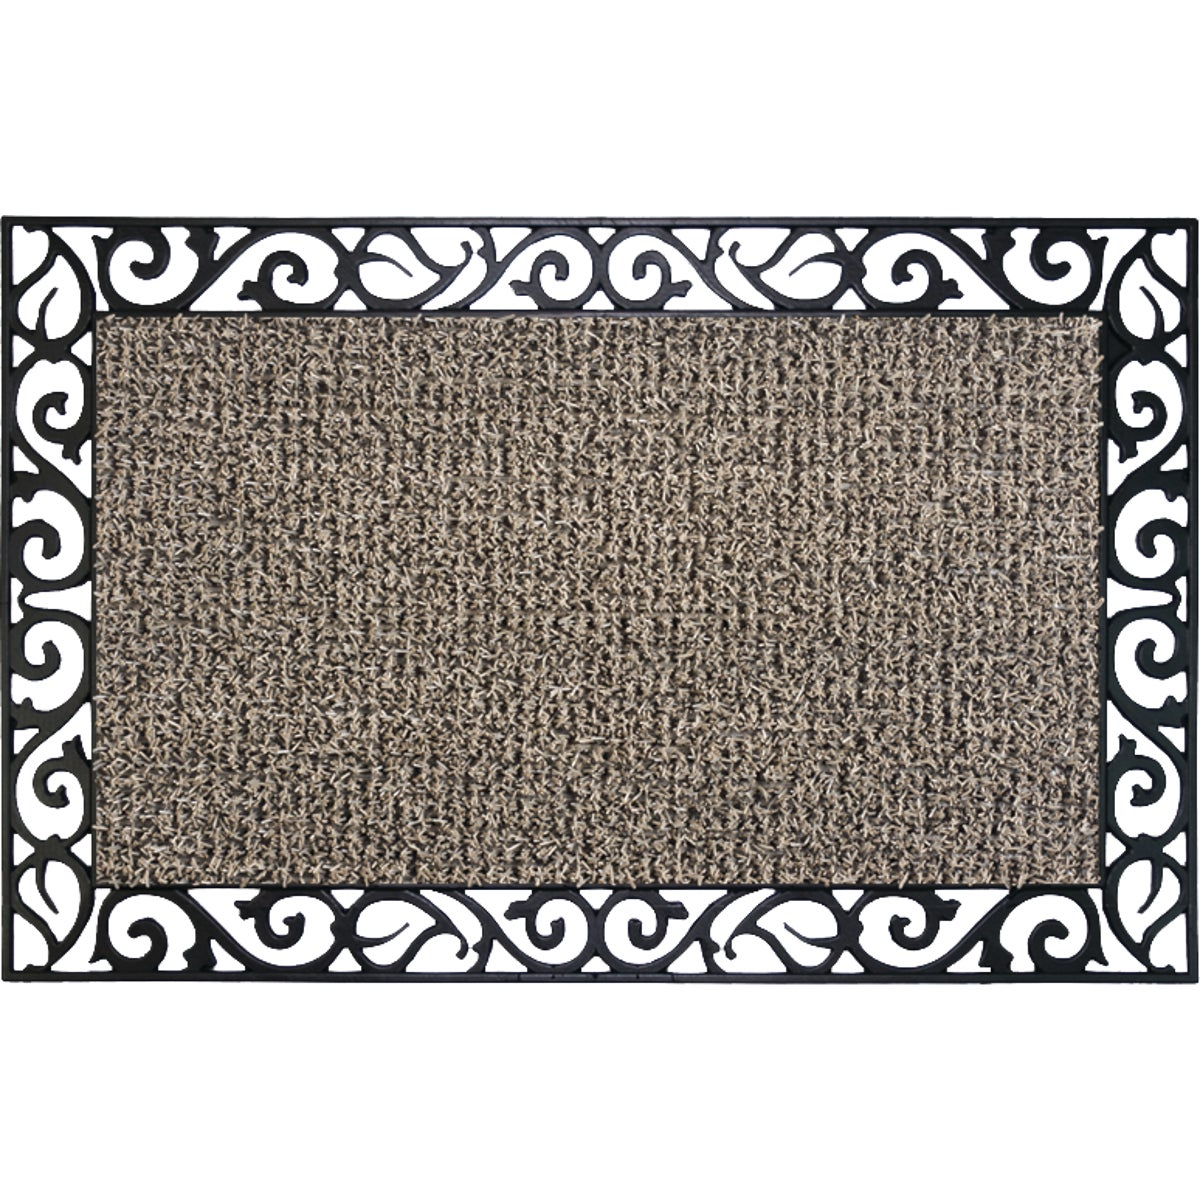 TAUPE DOORMAT - 10267307 by Grassworx